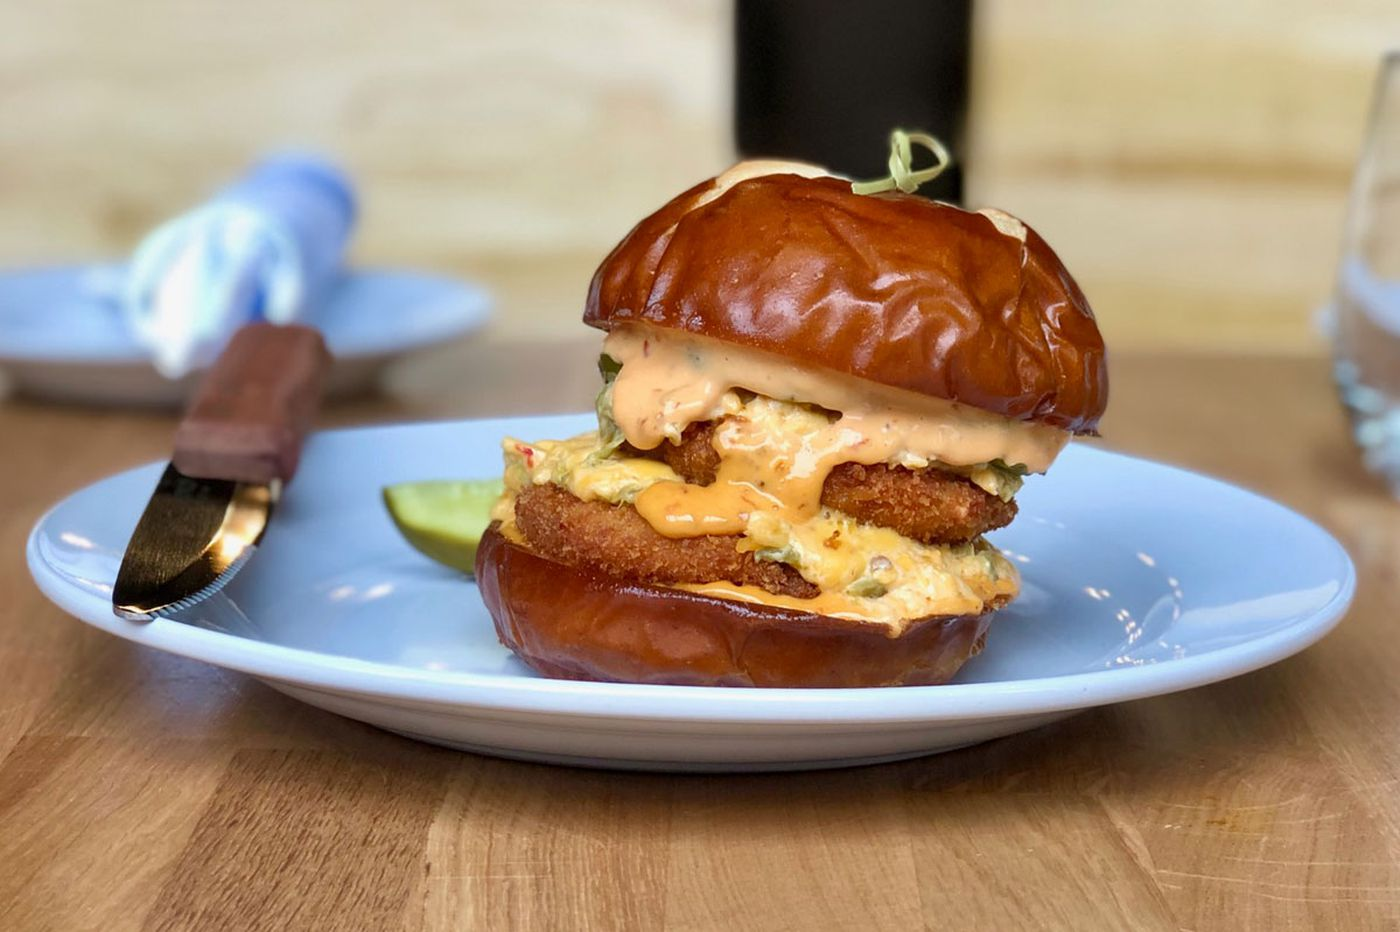 Burgers, pizzas, and other indulgent menu items at the new Emmy Squared | Let's Eat